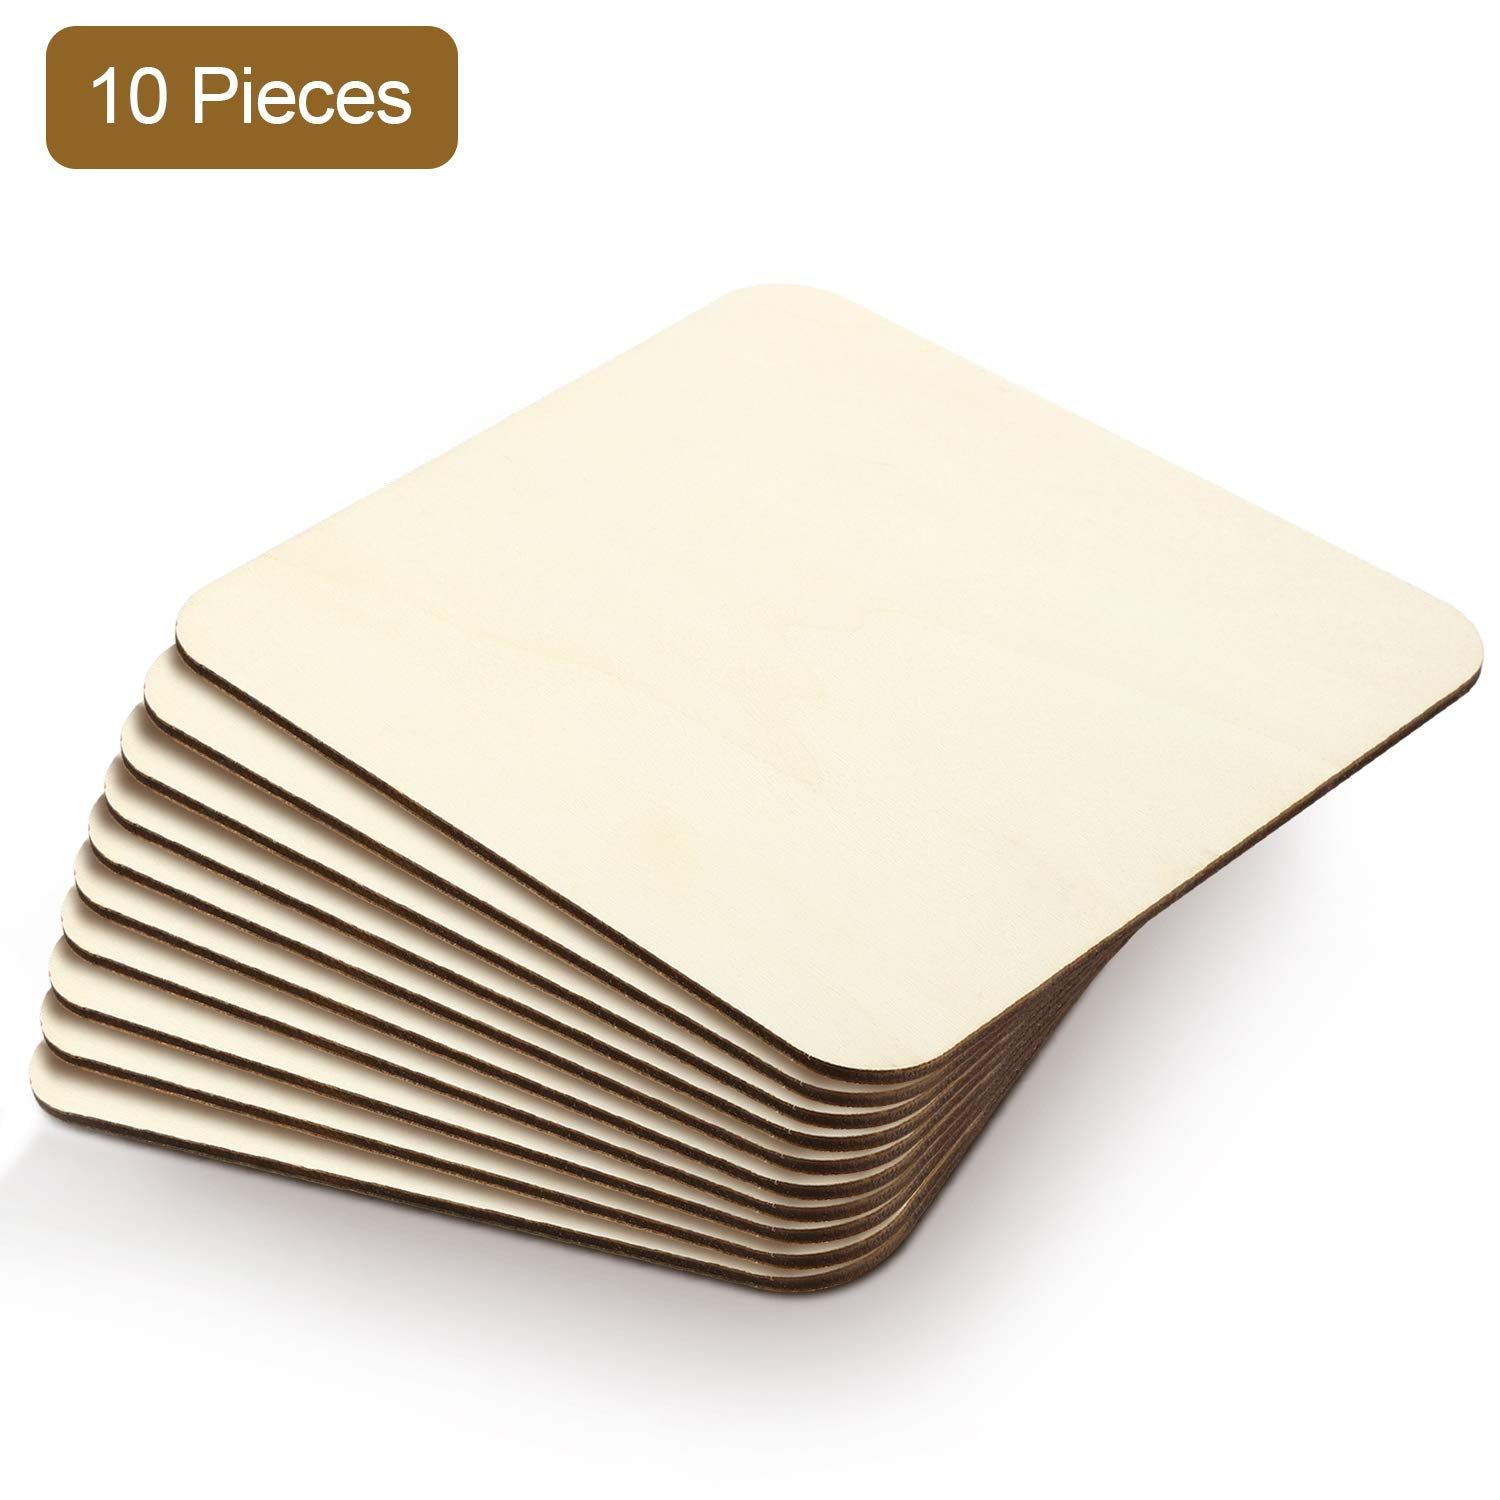 6 x 6 Inch, 10 Pieces Decoration Laser Engraving Carving Boao Blank Wood Squares Wood Pieces Unfinished Round Corner Square Wooden Cutouts for DIY Arts Craft Project